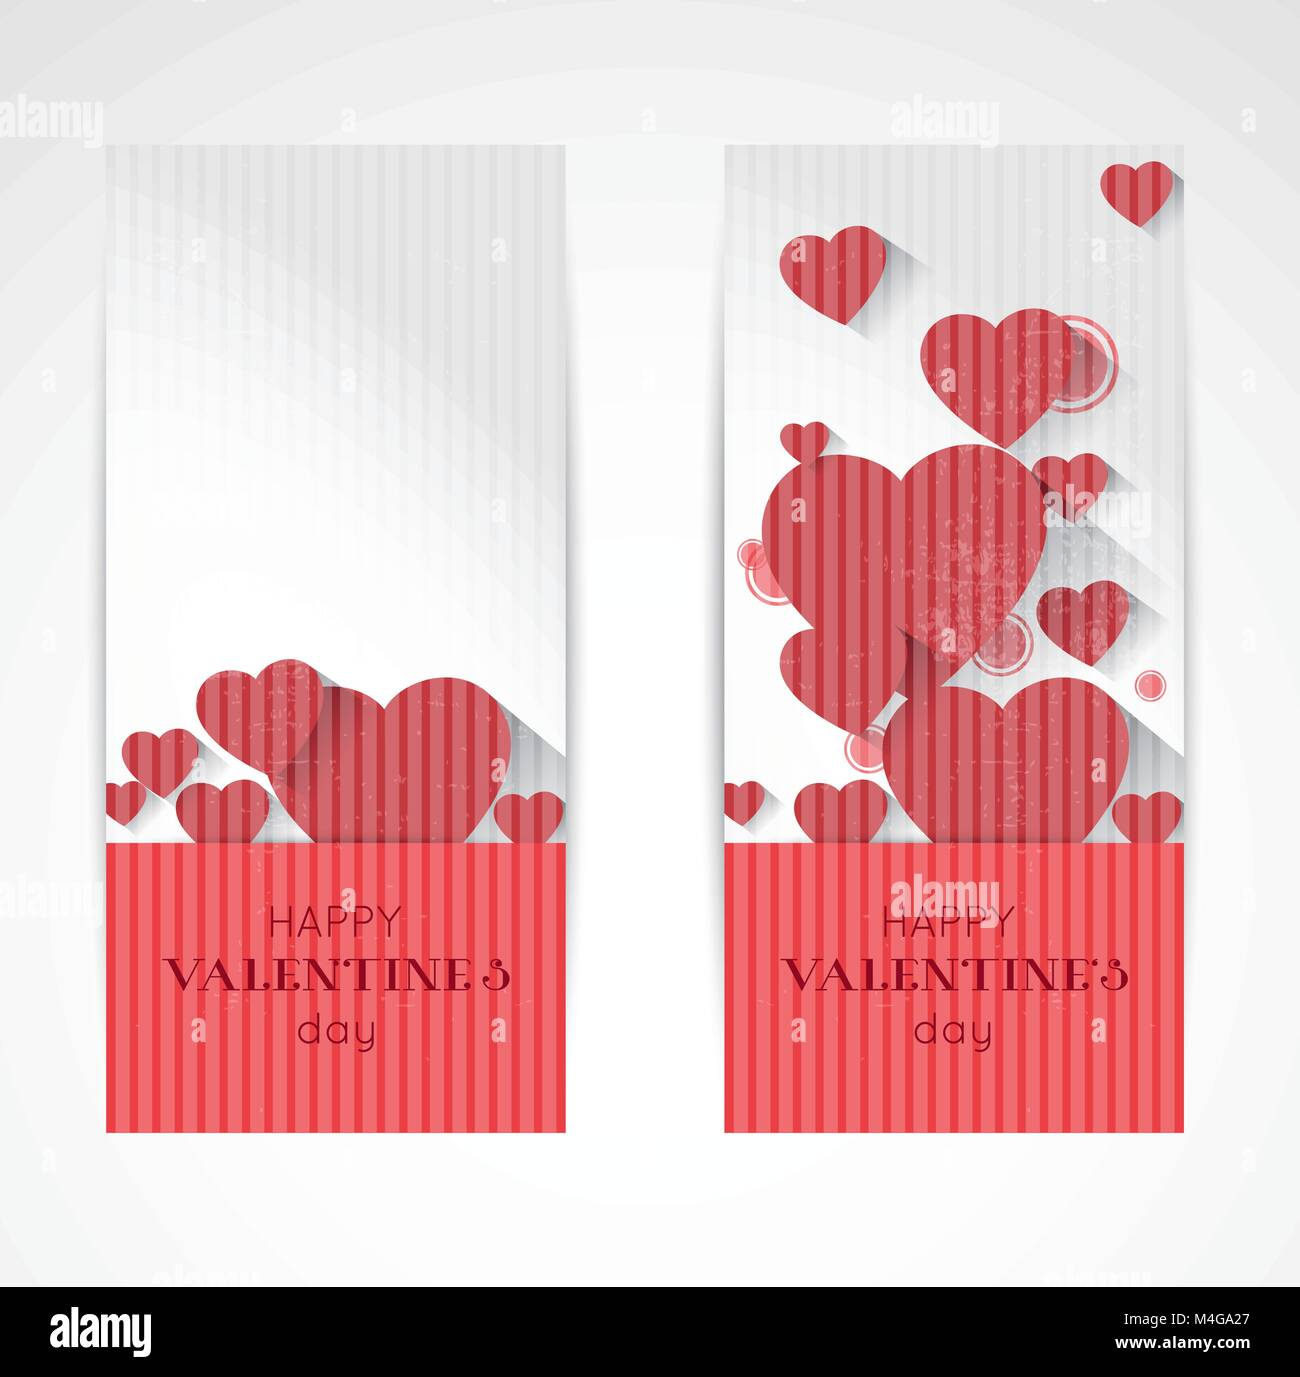 abstract valentine vertical banners in retro style with red hearts and long shadow effect - Stock Vector